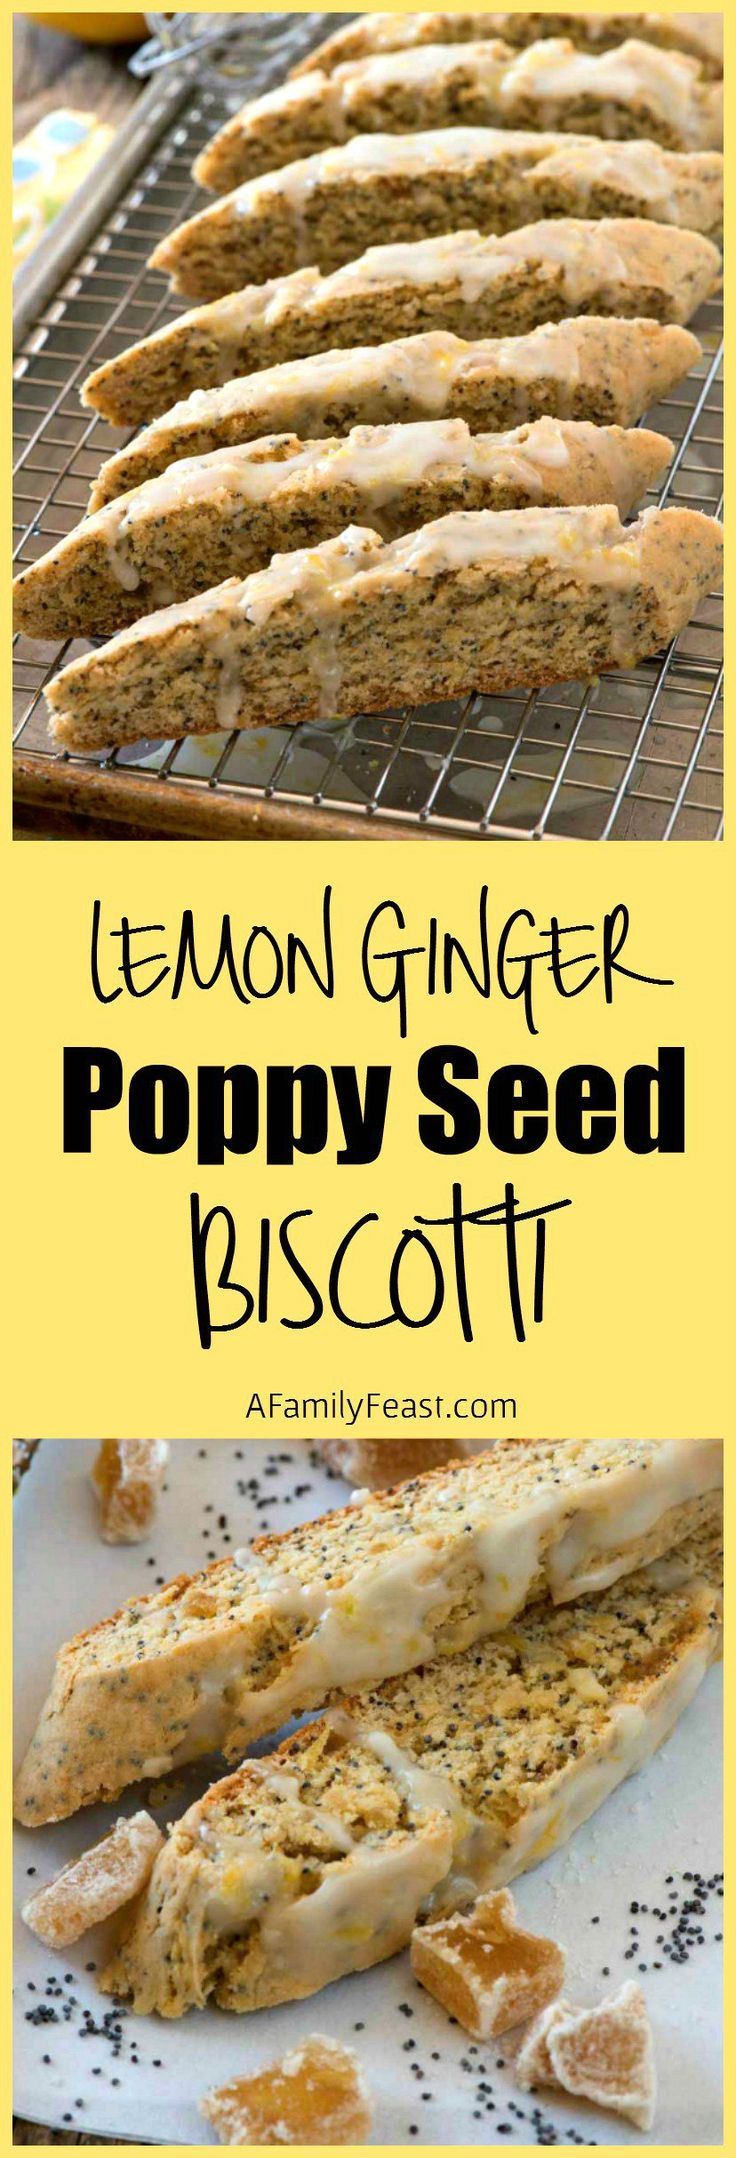 Lemon Ginger Poppy Seed Biscotti - Lemon poppy seed biscotti with bits of crystallized ginger and fresh lemon zest. So delicious!